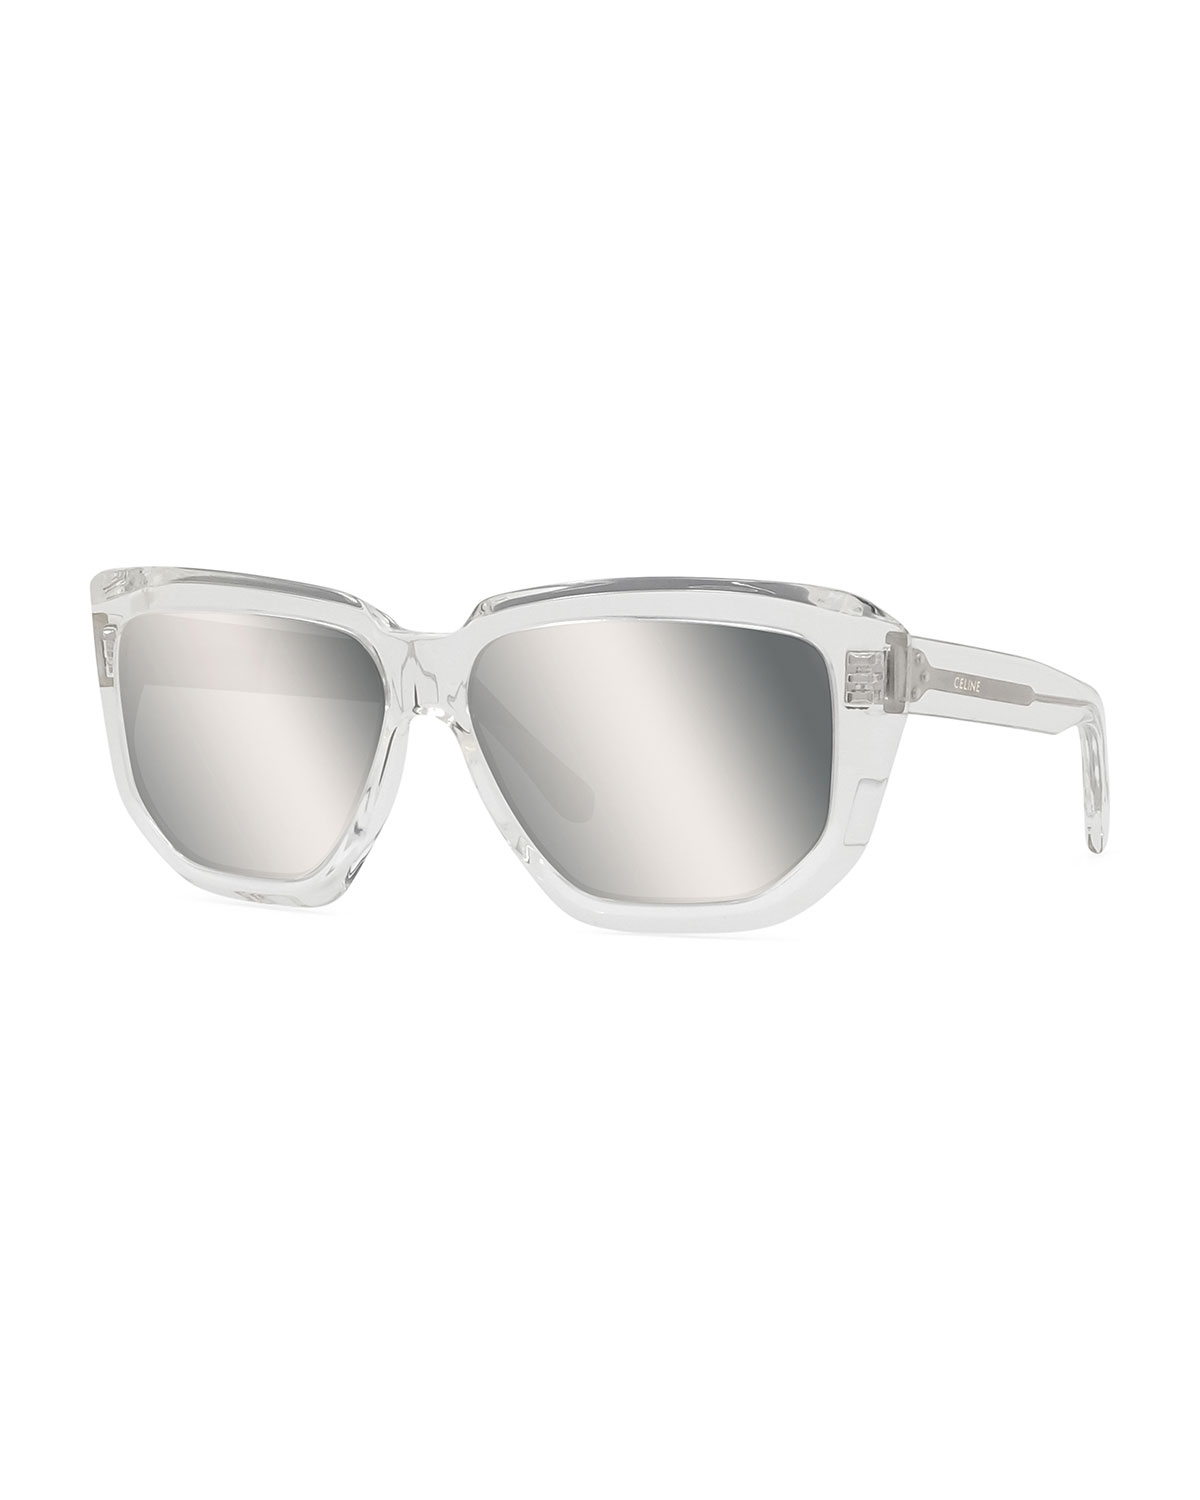 Celine Sunglasses MEN'S MIRRORED SQUARE TRANSPARENT ACETATE SUNGLASSES